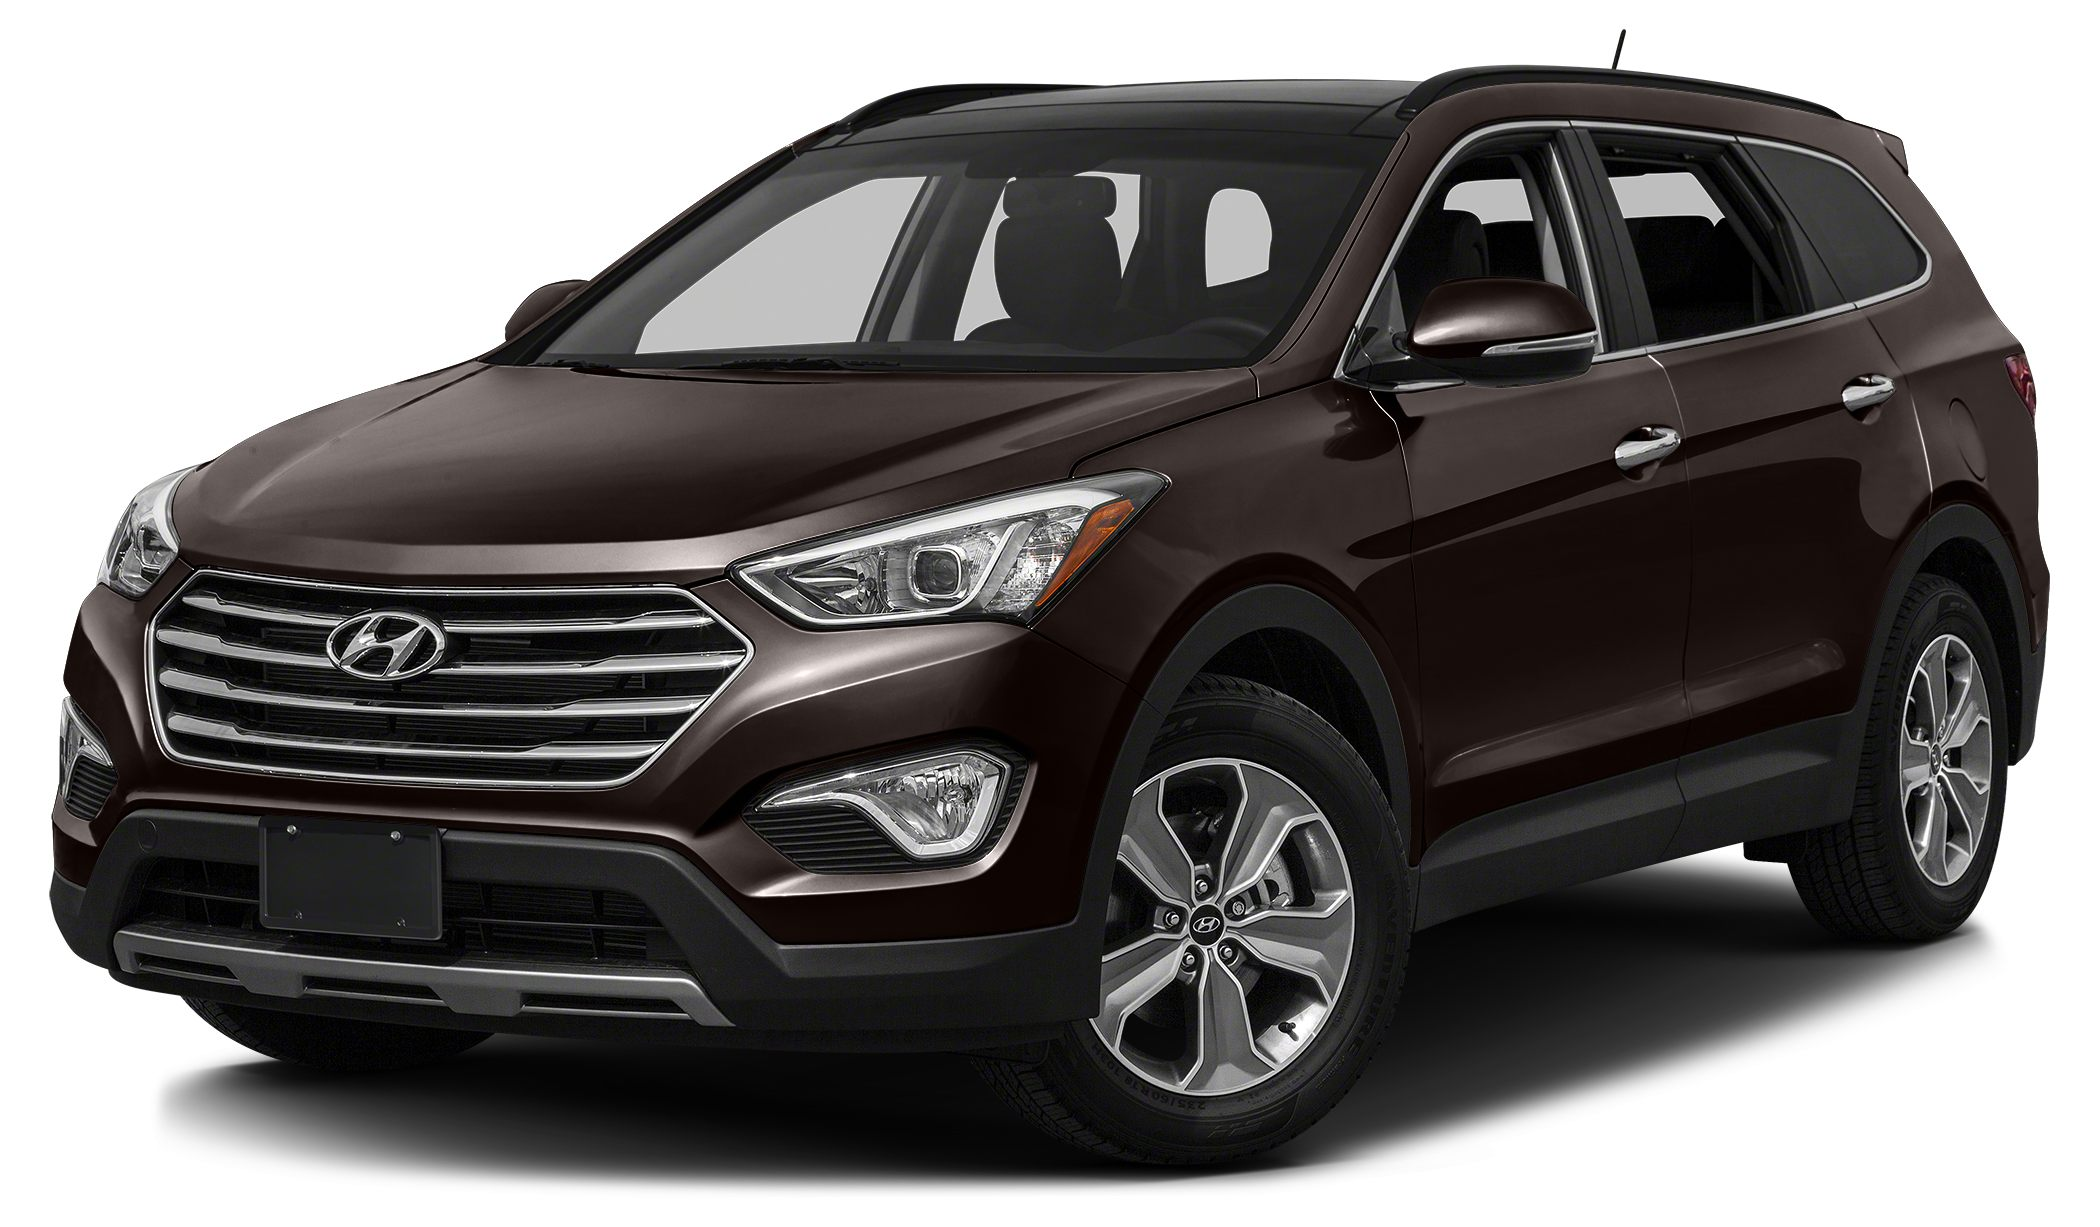 2013 Hyundai Santa Fe GLS HYUNDAI CERTIFIED - NAVIGATION - LEATHER -7 Passenger -Fully Serviced -